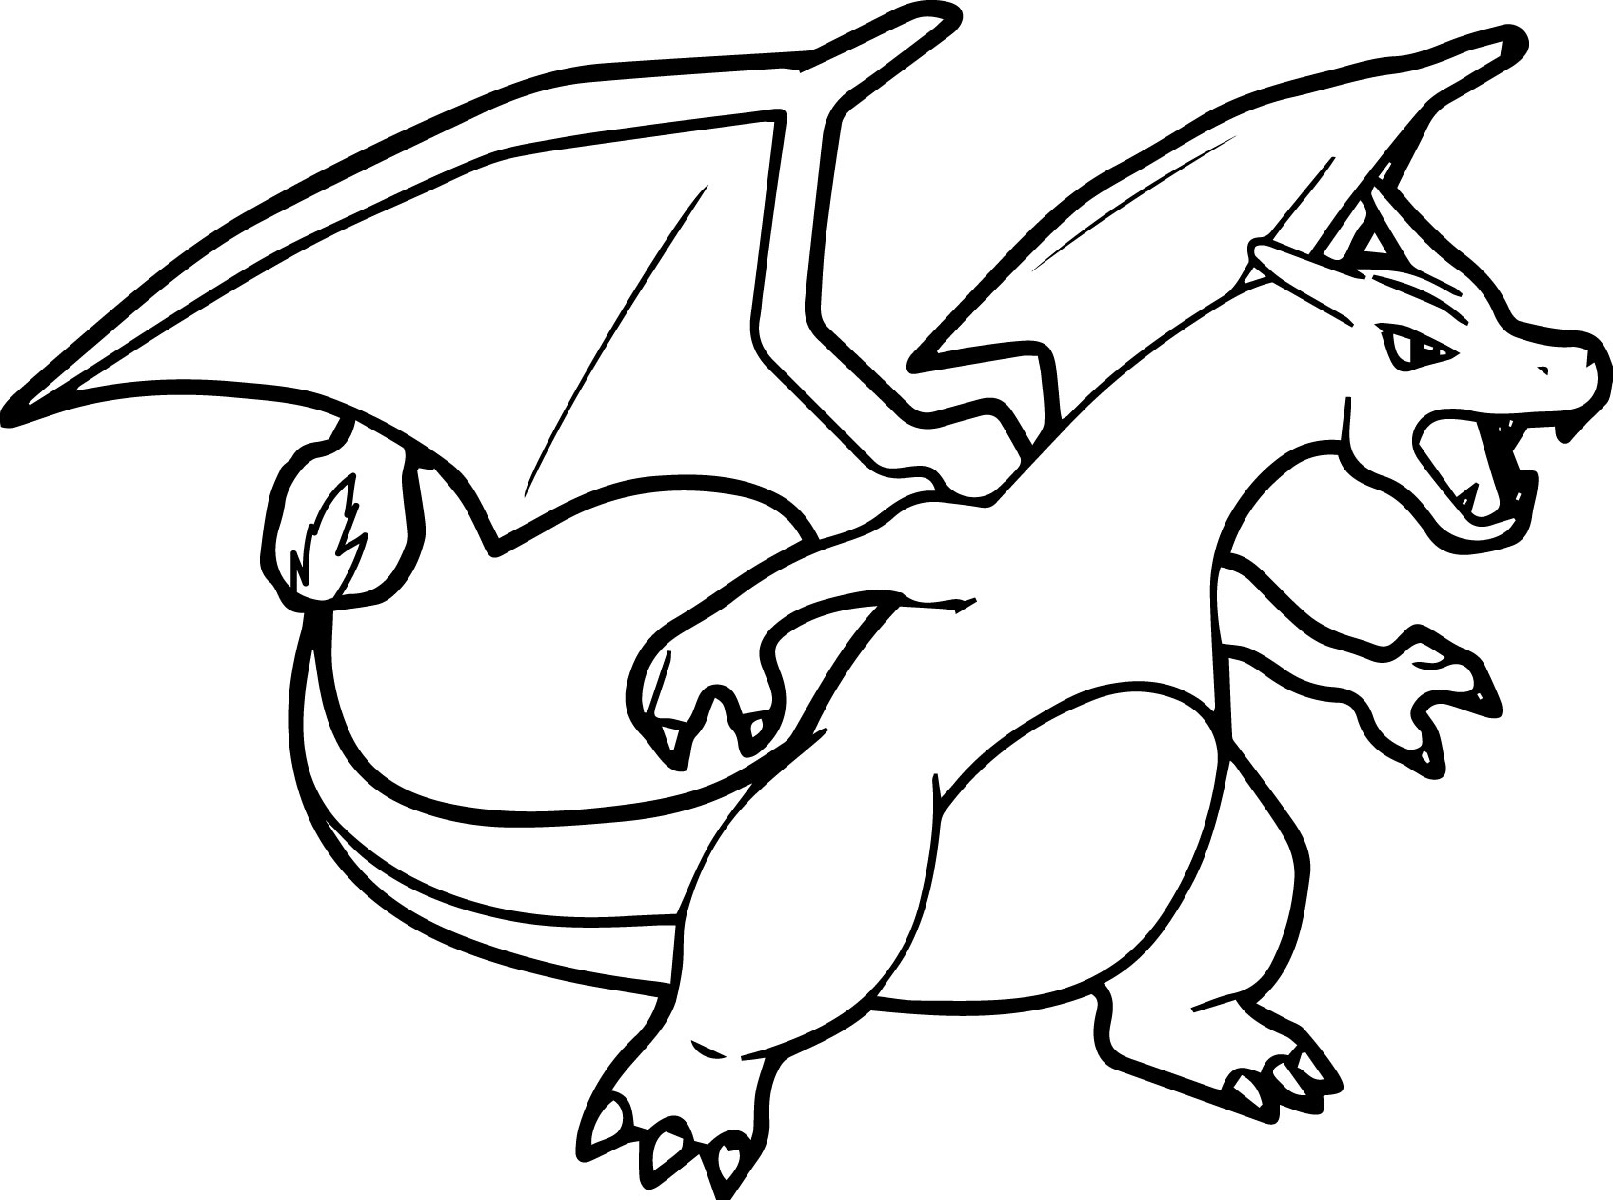 Mega Charizard Coloring Page To Print